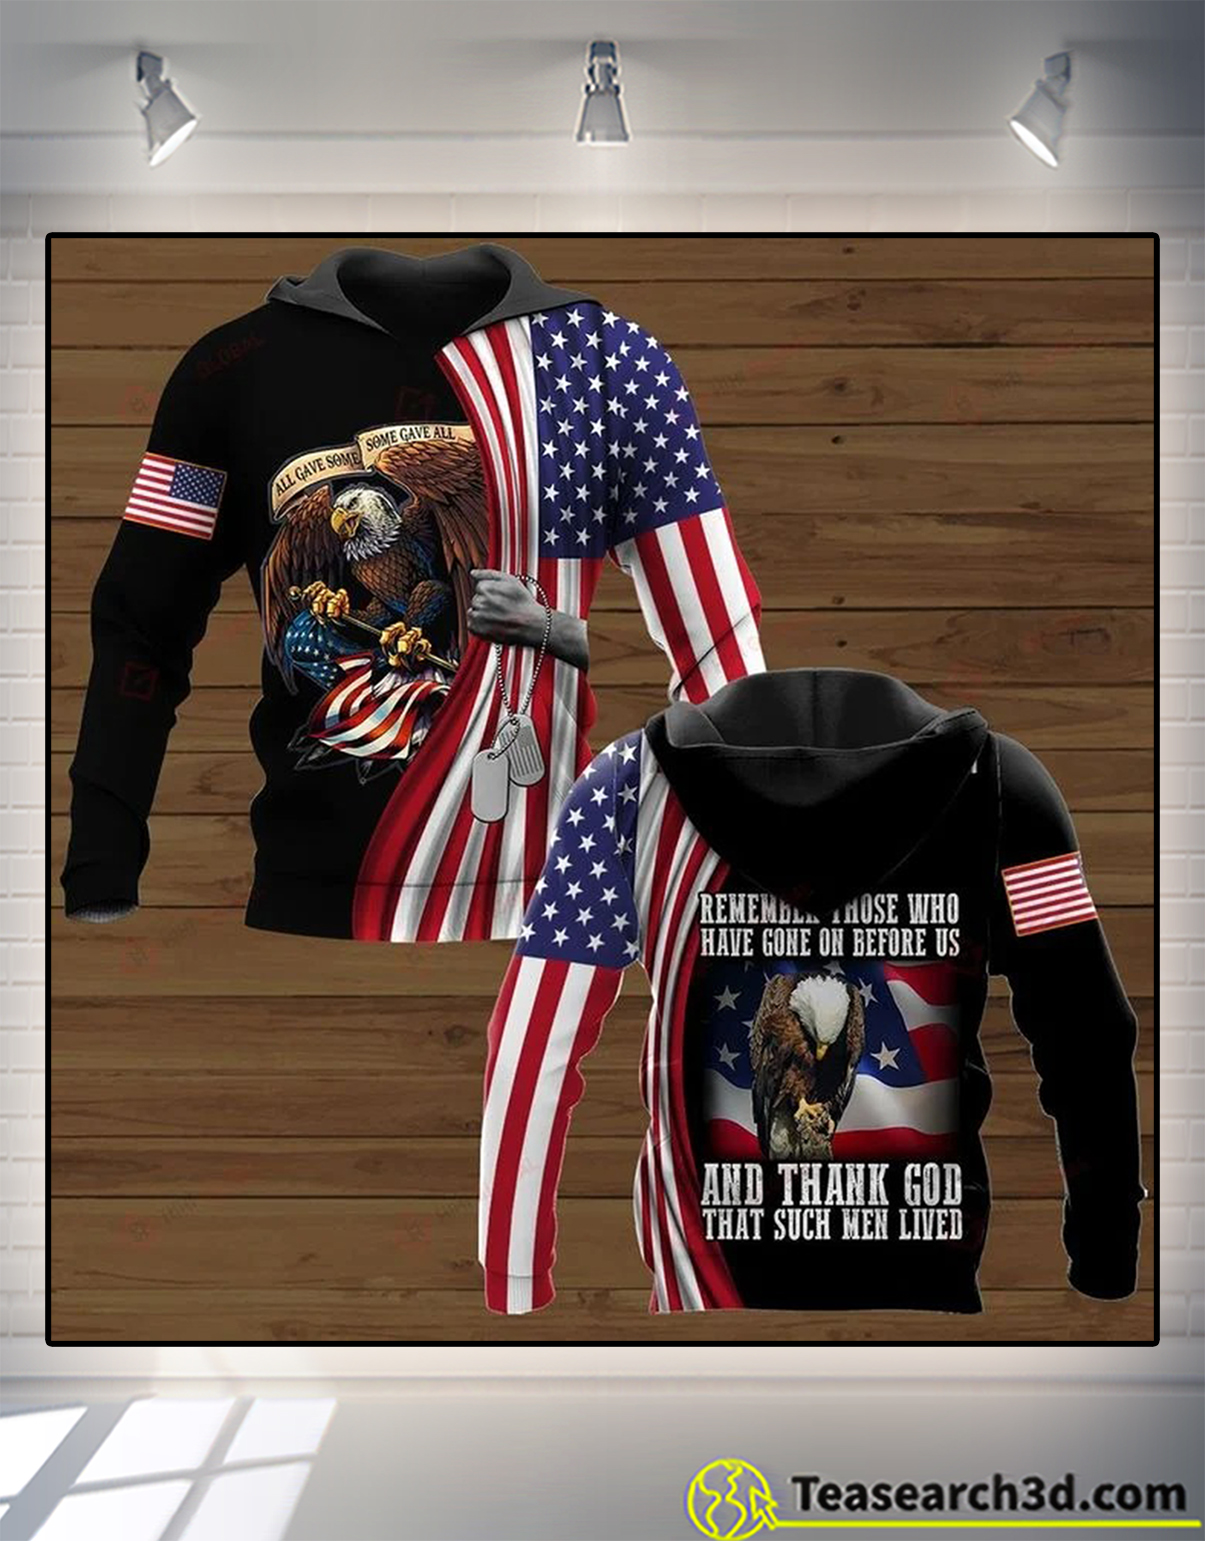 Eagle remember those who have gone on before us and thank god 3d all over printed hoodie